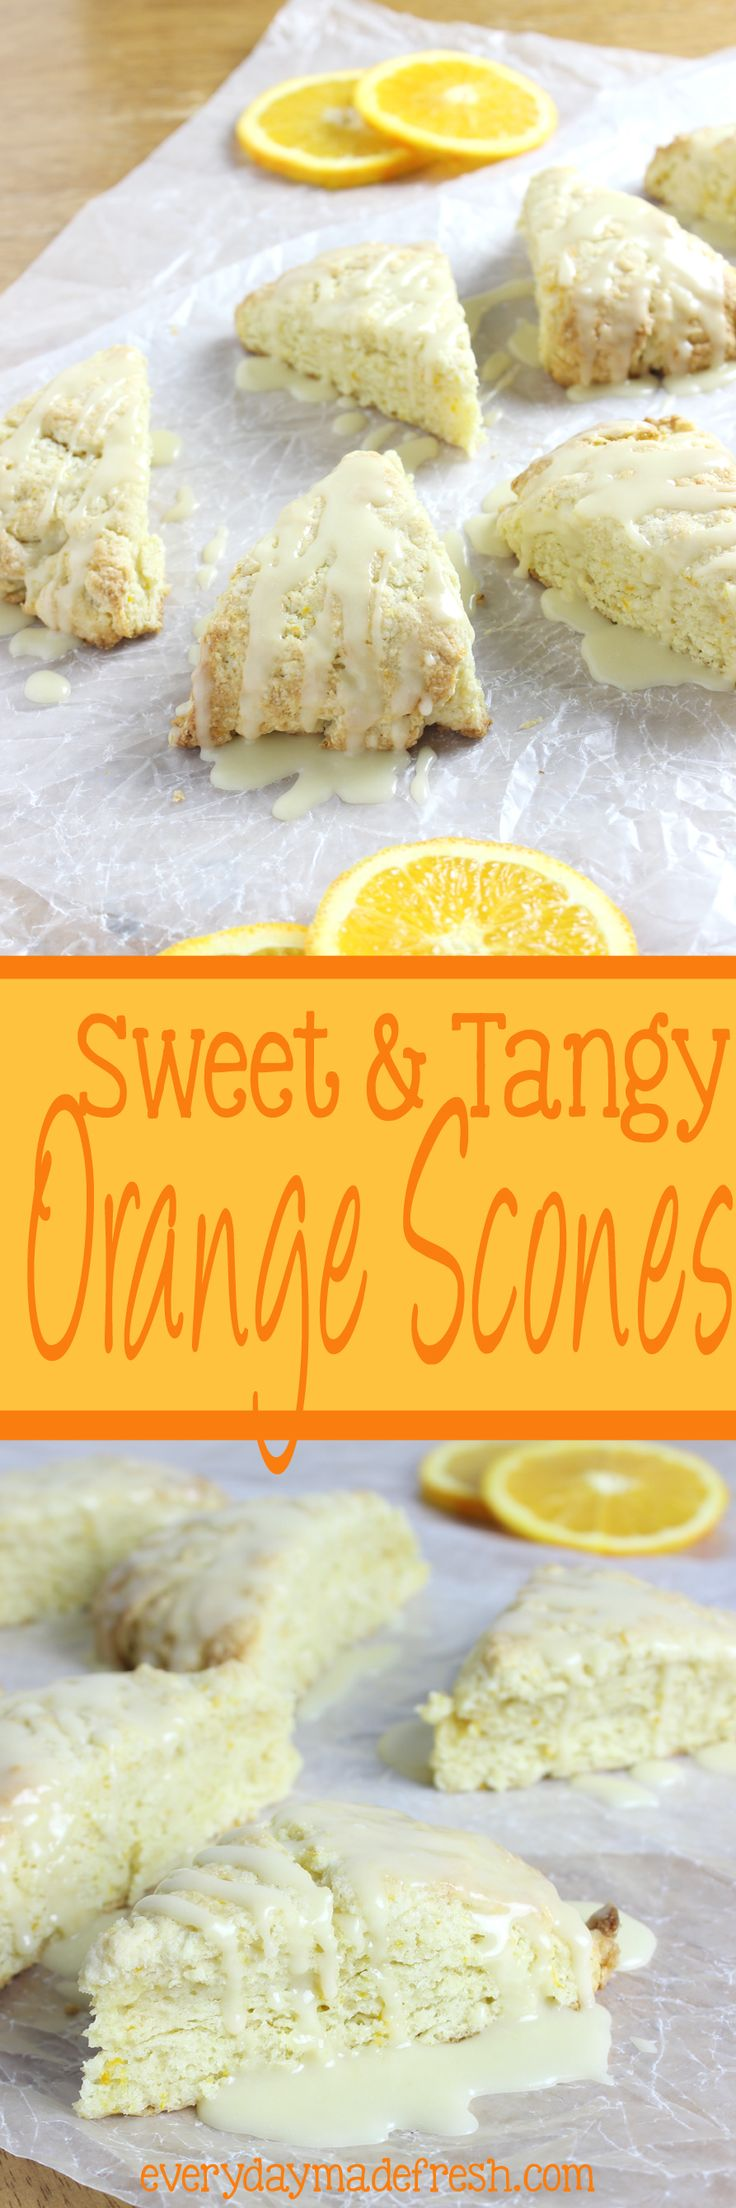 These Sweet & Tangy Orange Scones are studded with zest and bursting with fresh orange flavor! | EverydayMadeFresh.com http://www.everydaymadefresh.com/sweet-tangy-orange-scones/